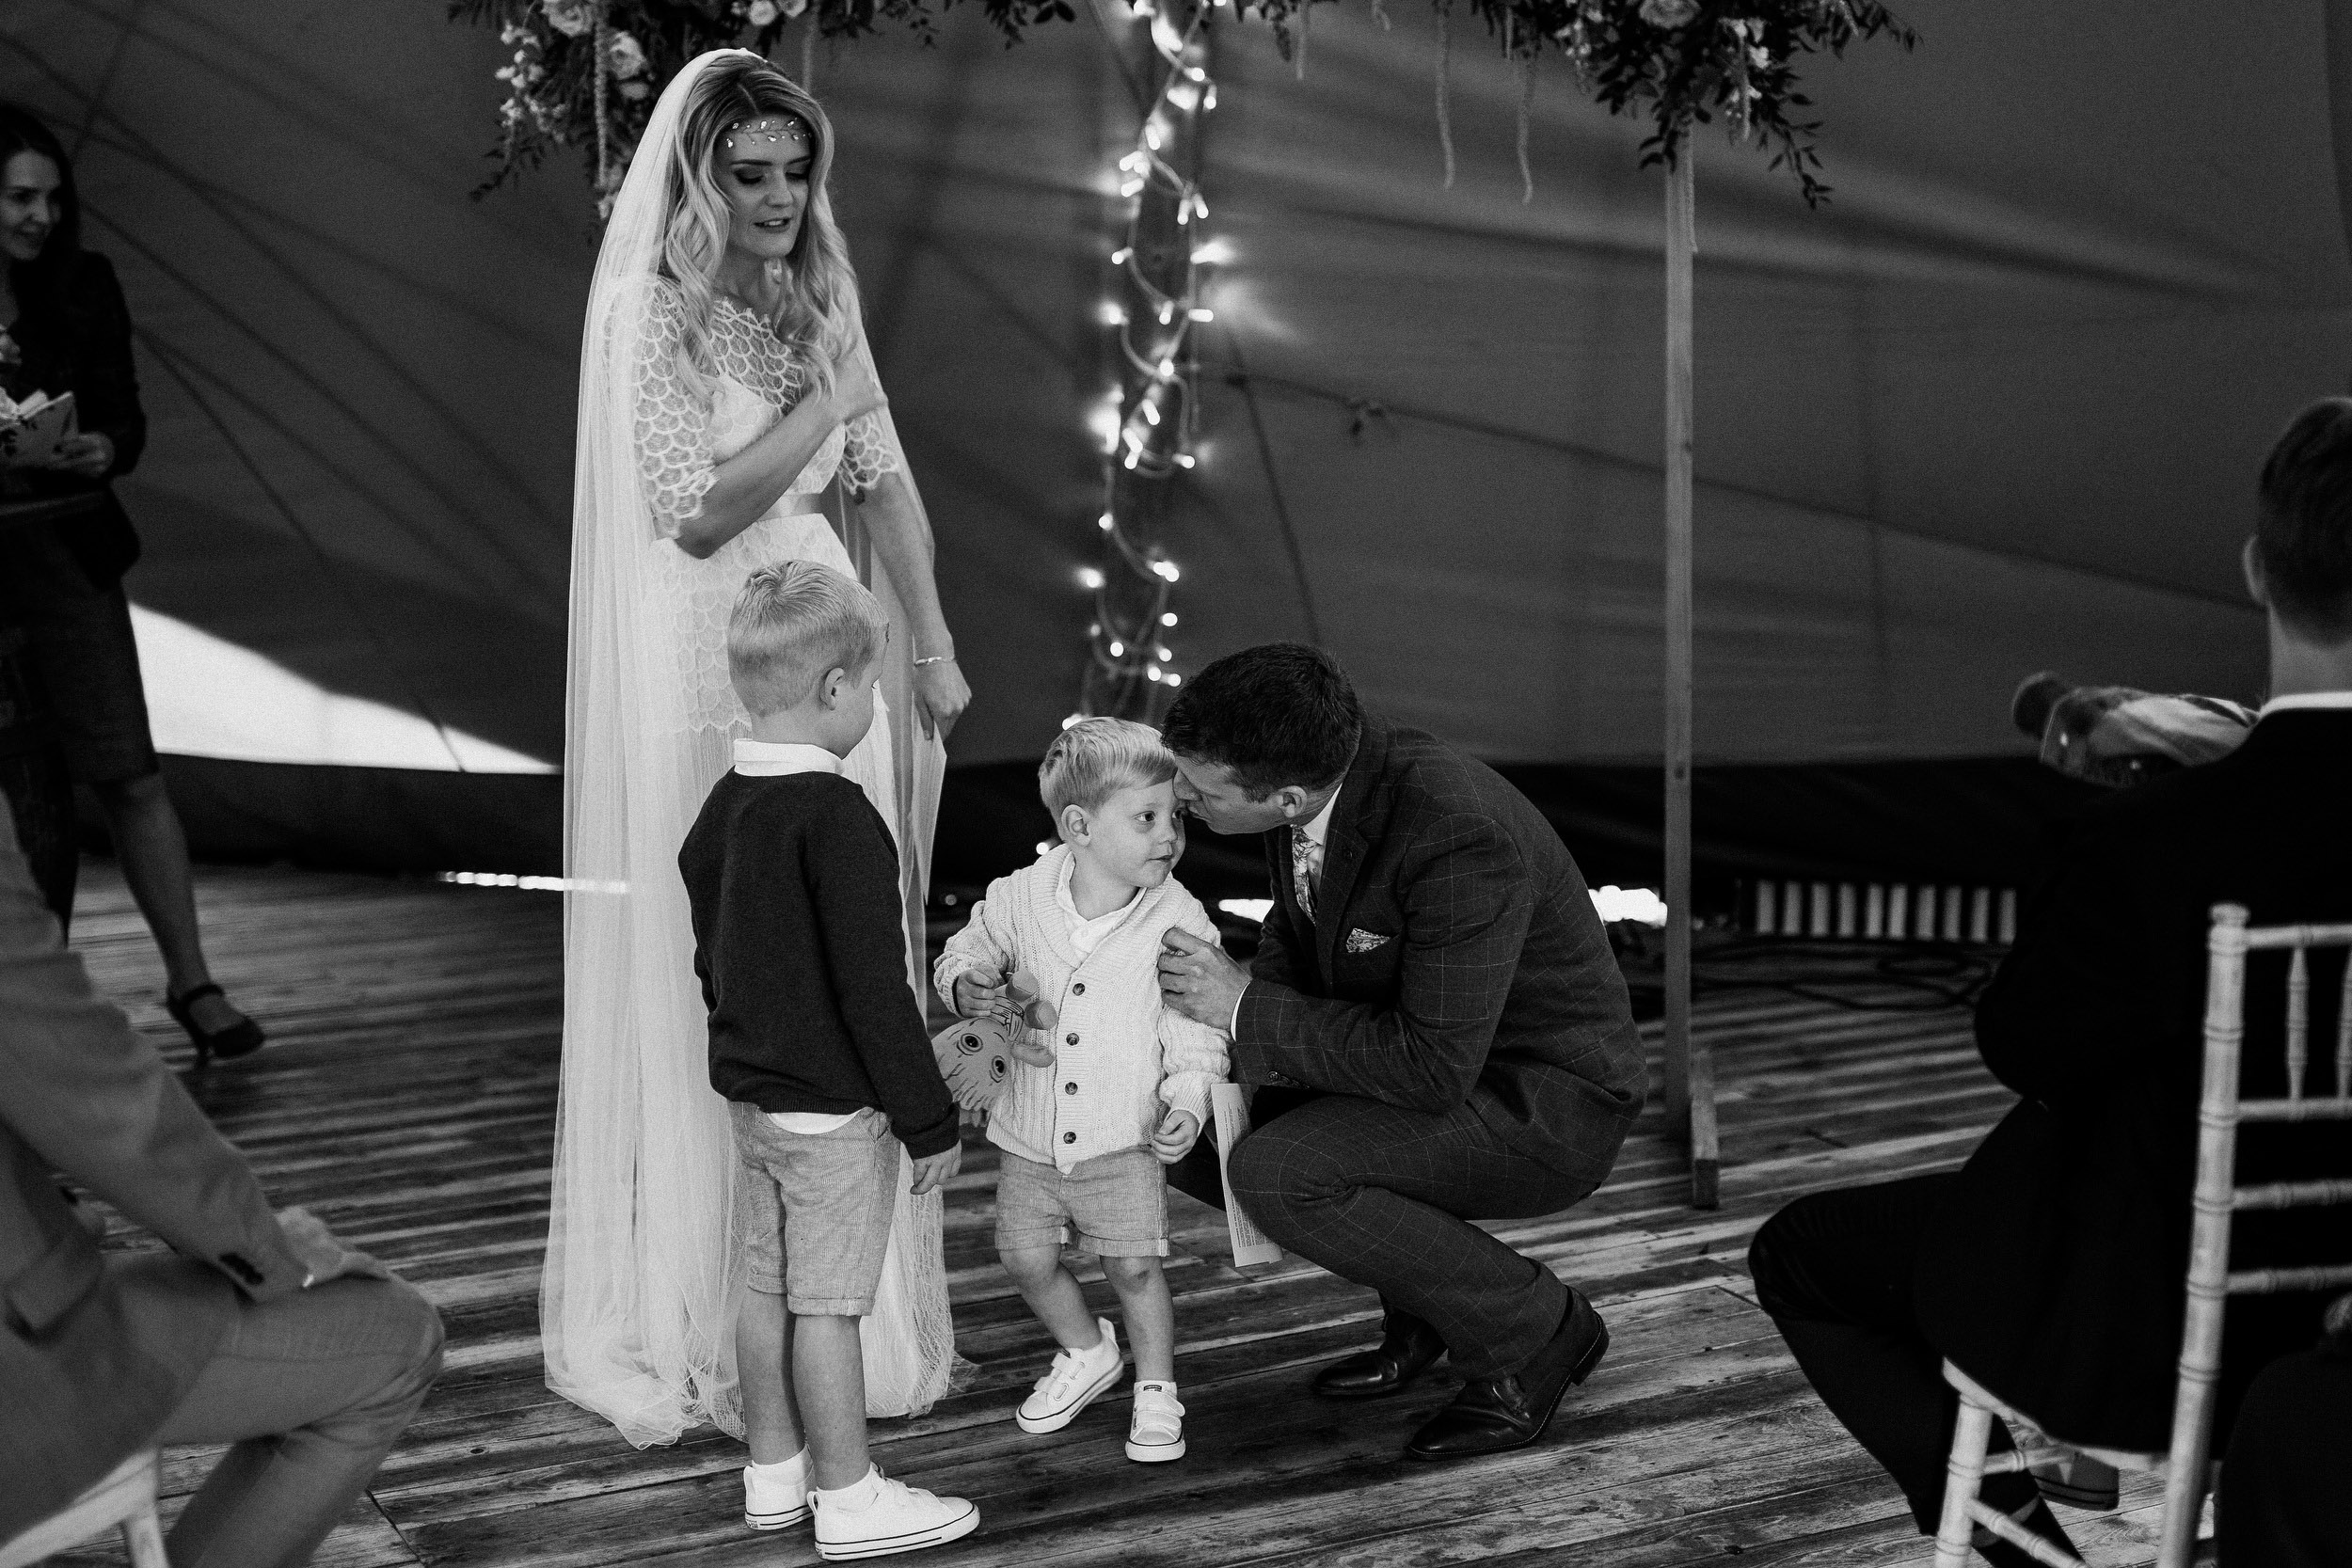 Gemma-Bohemian-Outdoor-Tipi-Wedding-Laid-Back-Relaxed-Family-Wedding-Kate-Beaumont-Astilbe-by-S6-Photography-Sheffield-15.jpg